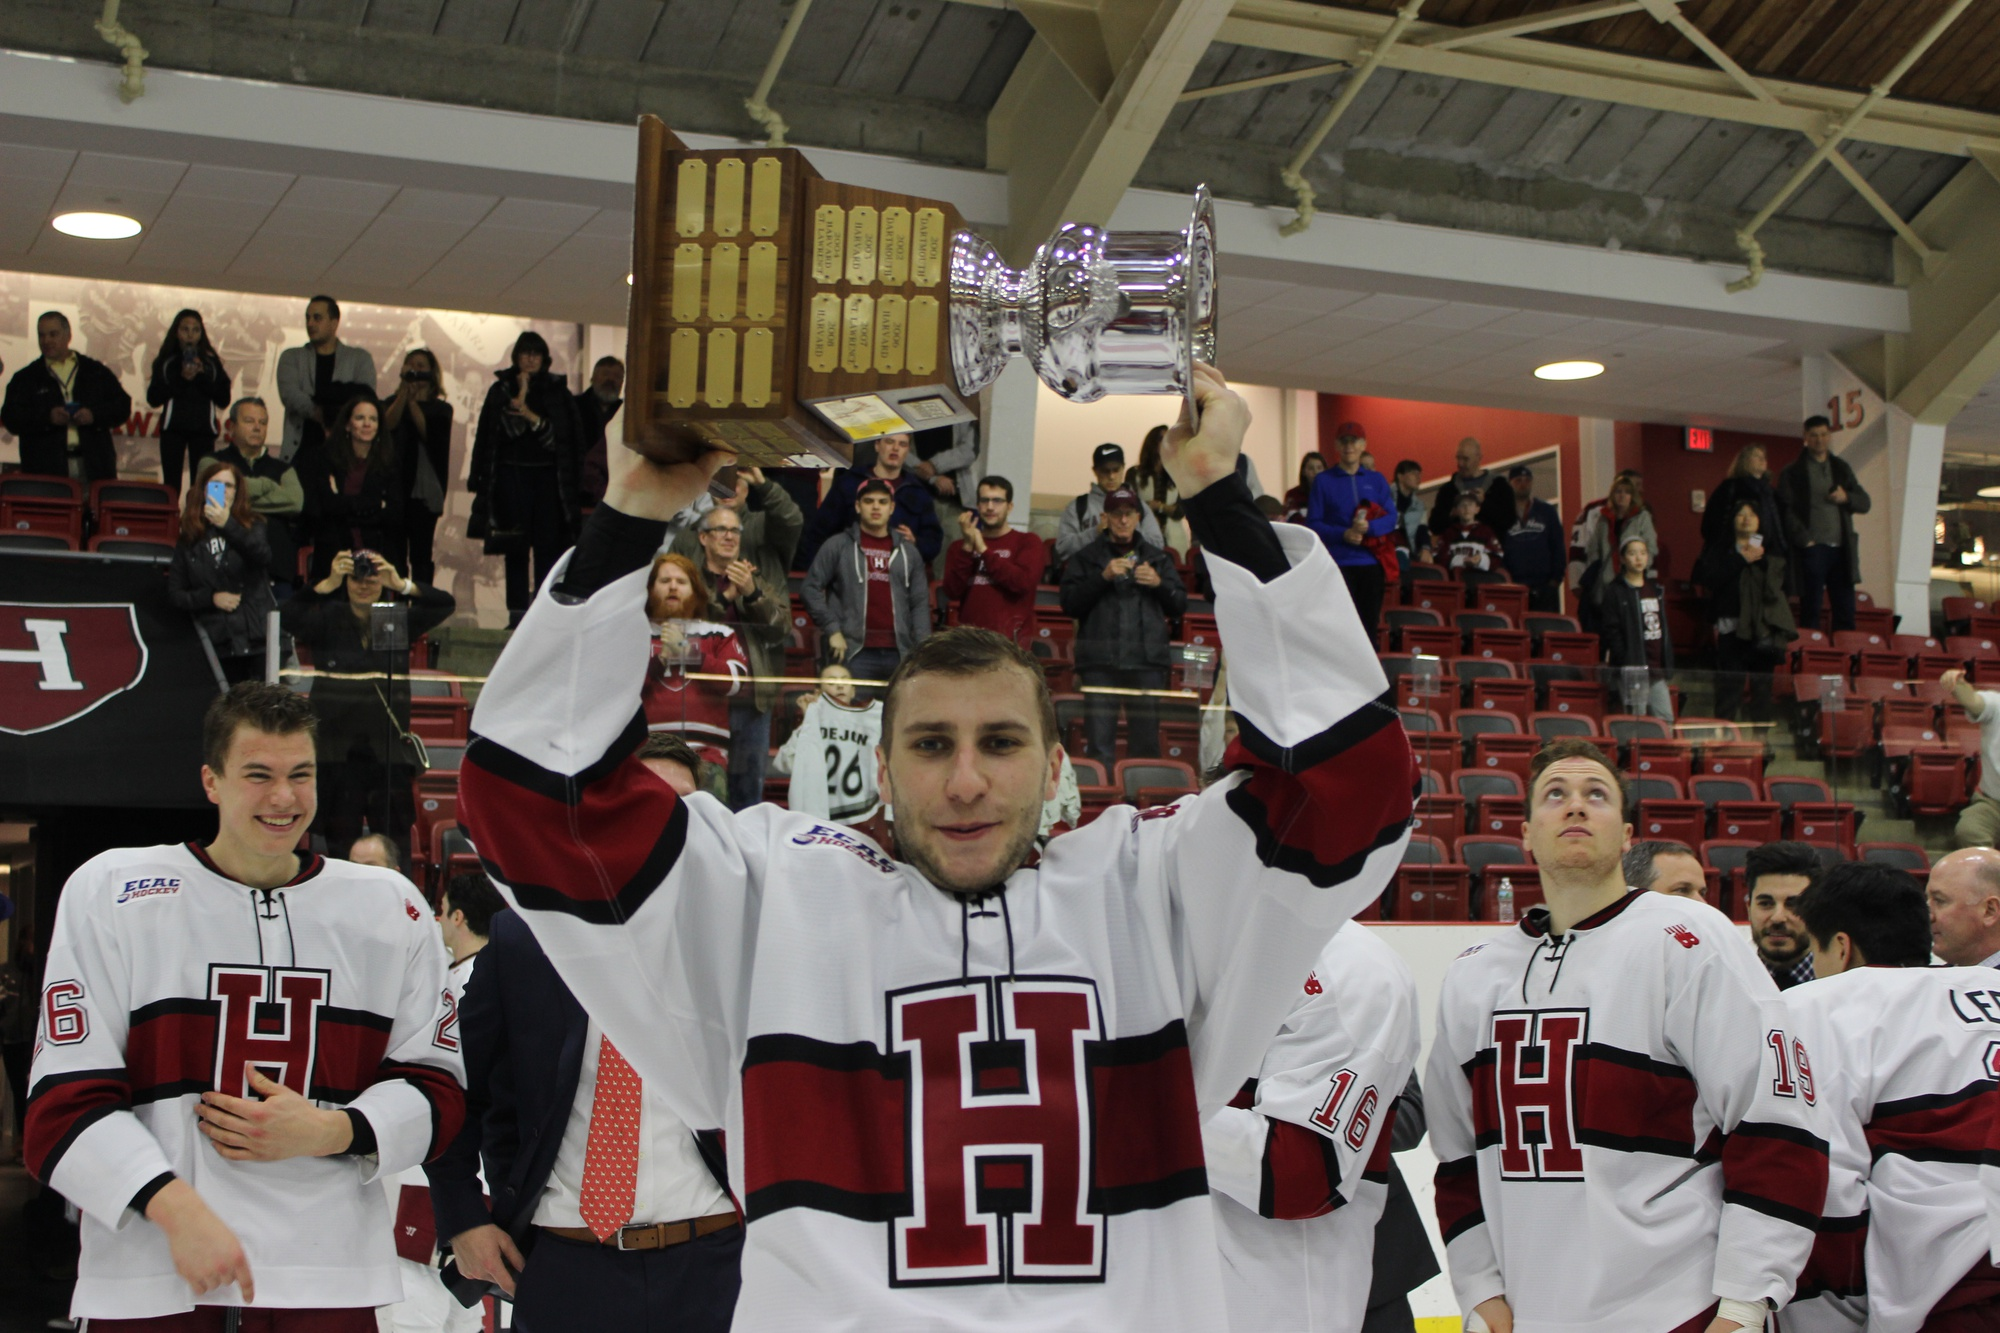 Having played in Harvard's last 14 games, senior Phil Zielonka has won trophy after trophy without losing a contest.